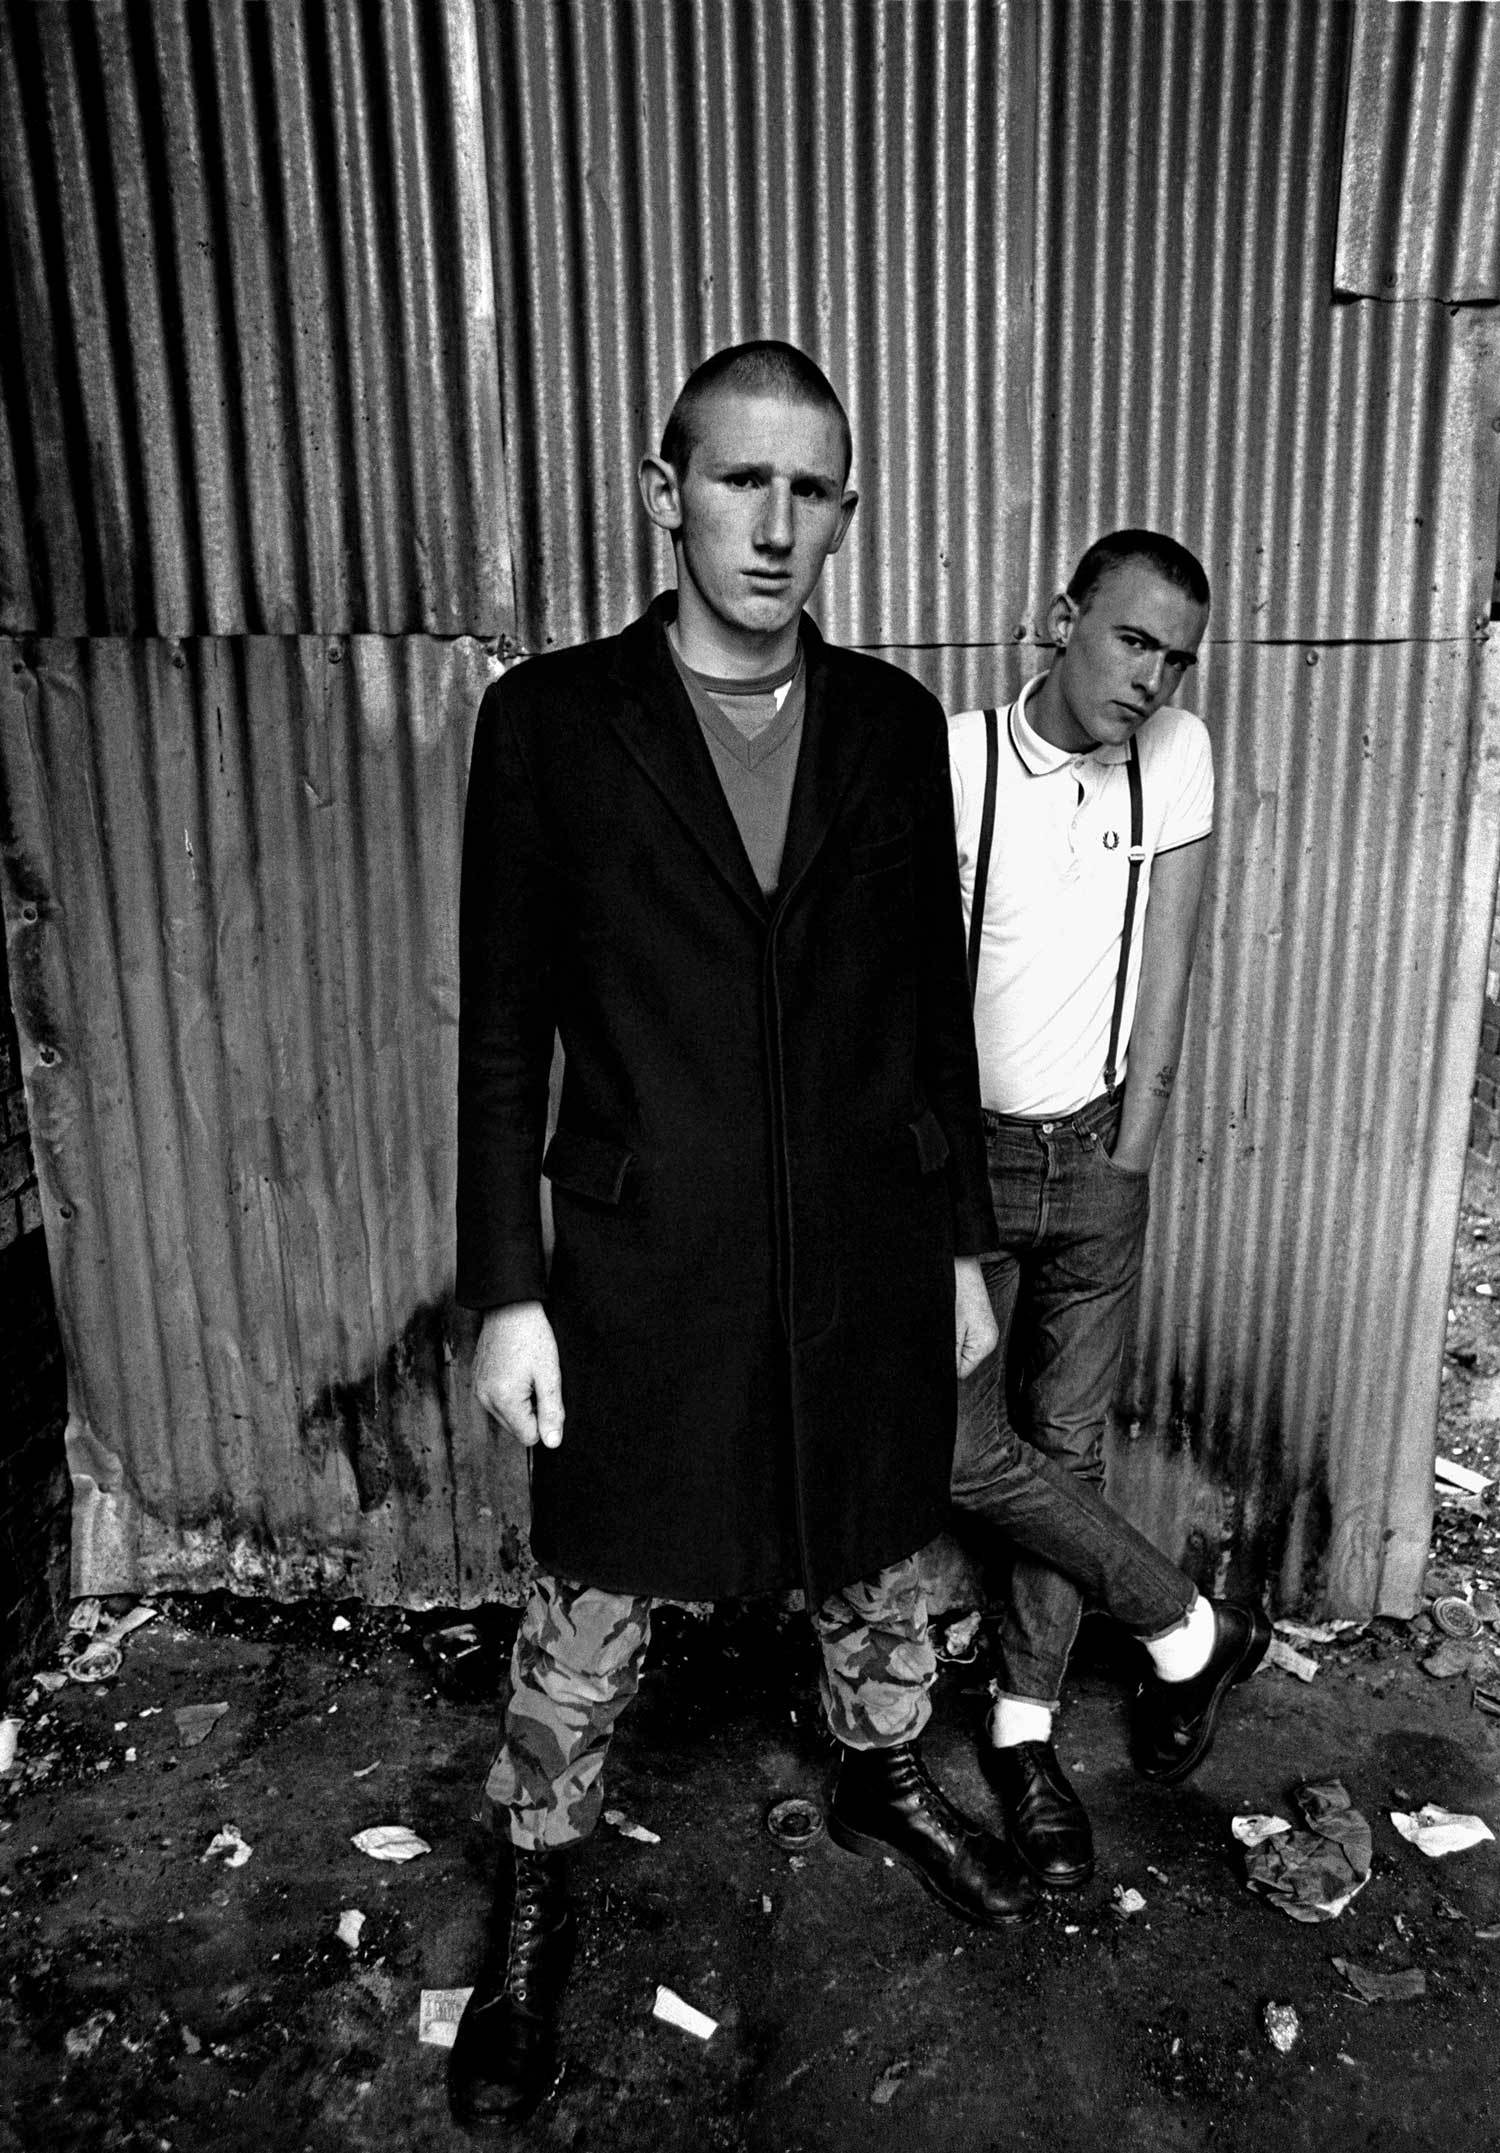 an analysis of immigrants slaves and skinheads englands role in reggae Traditional skinheads sometimes wear suits, often made out oftwo-tone tonic fabric (shiny mohair-like material that changes colour indifferent light and angles)many skinheads the skinhead subculture was originally associated with black popular music genres such as soul, rocksteady and early reggae.